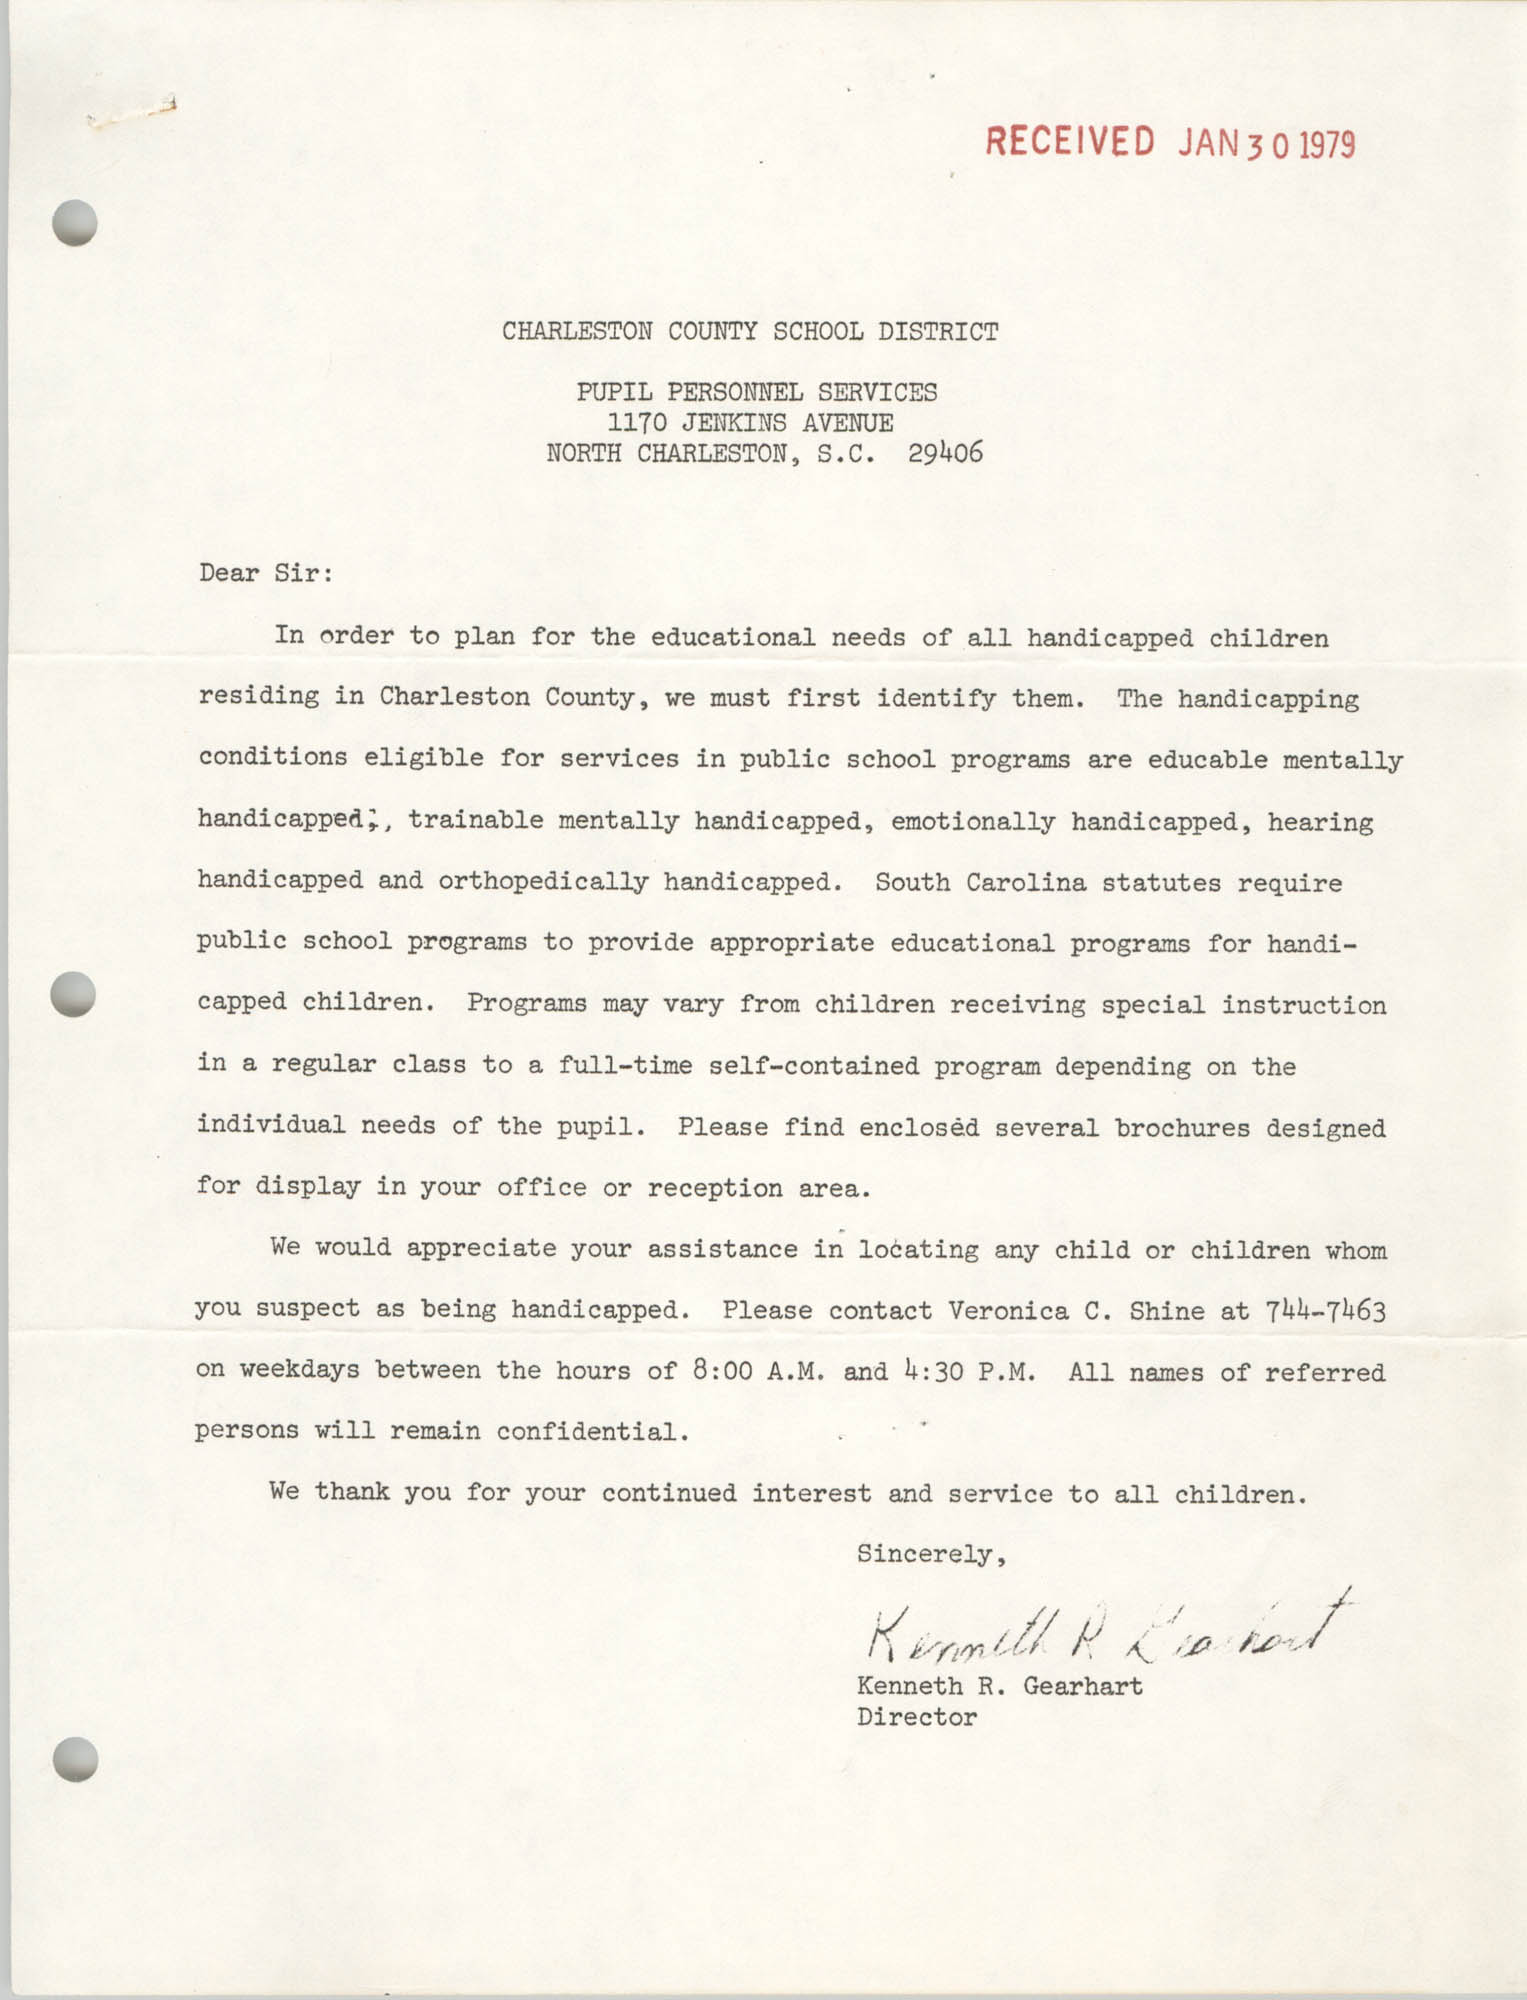 Letter from Kenneth R. Gearhart to Pupil Personnel Services, January 30, 1979